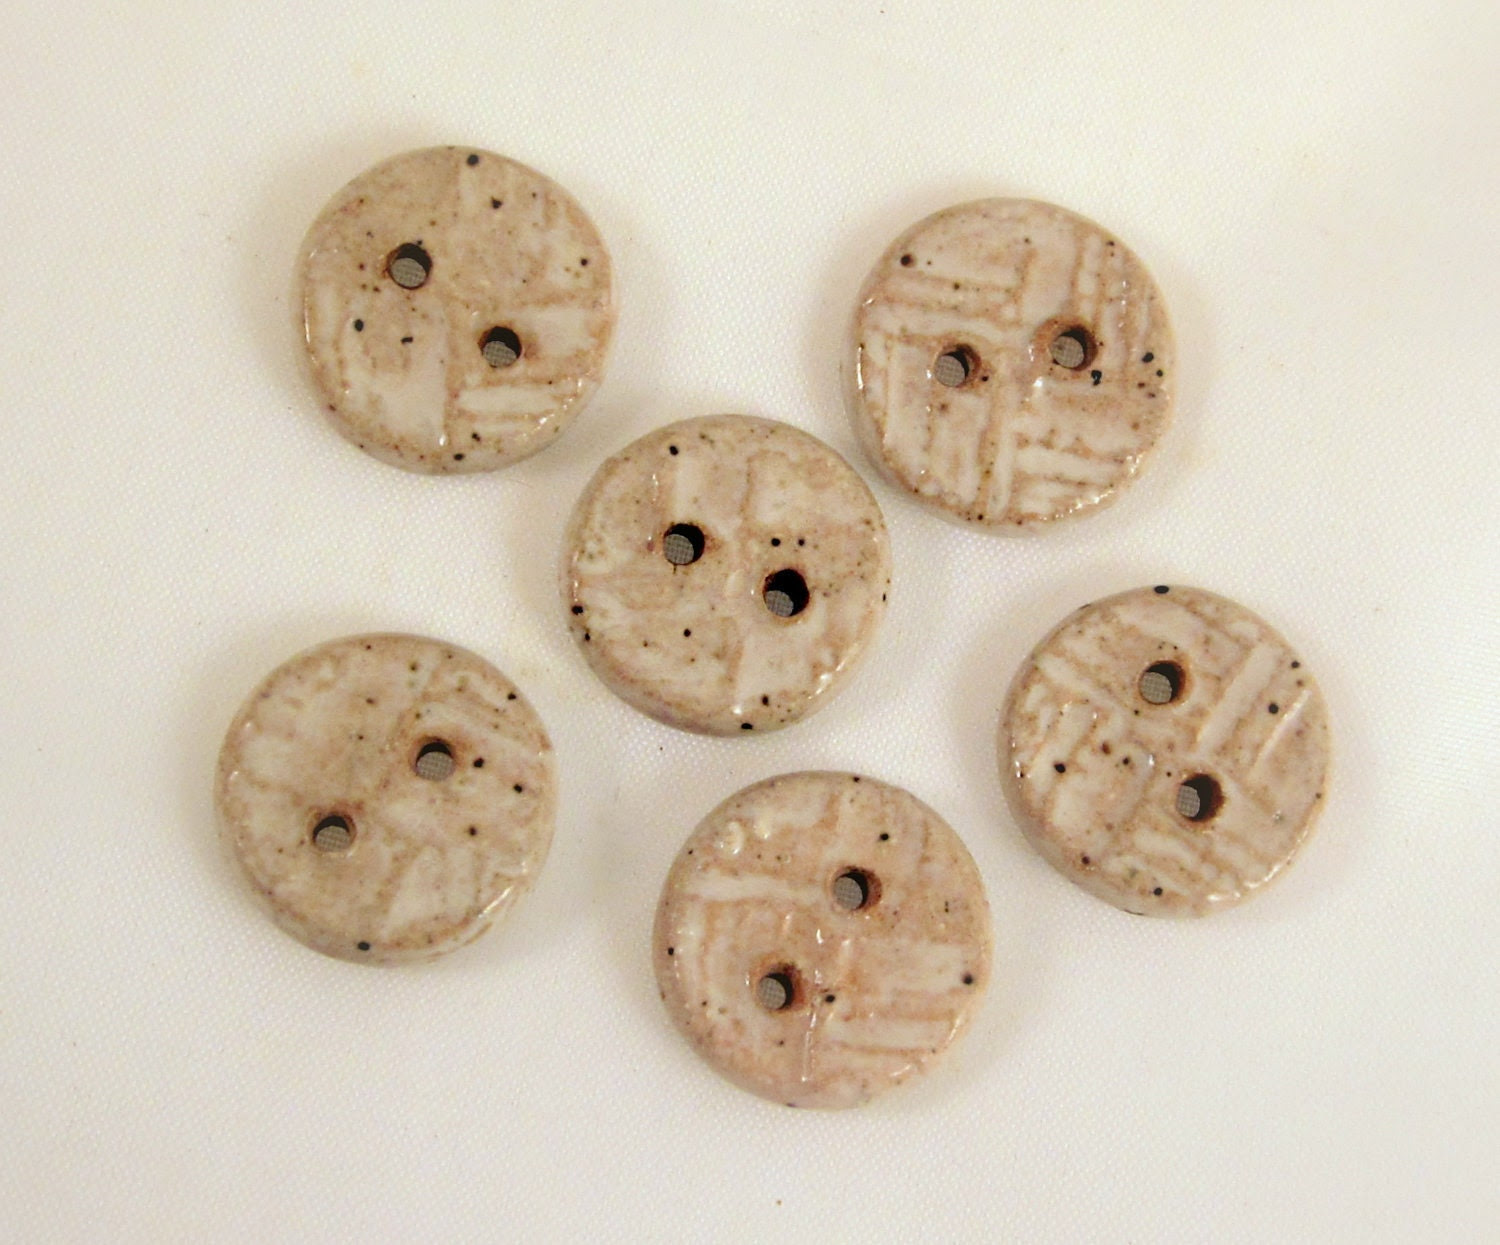 Set of 6 Small Round Handmade Clay Pottery Buttons - Weave Design - Cream